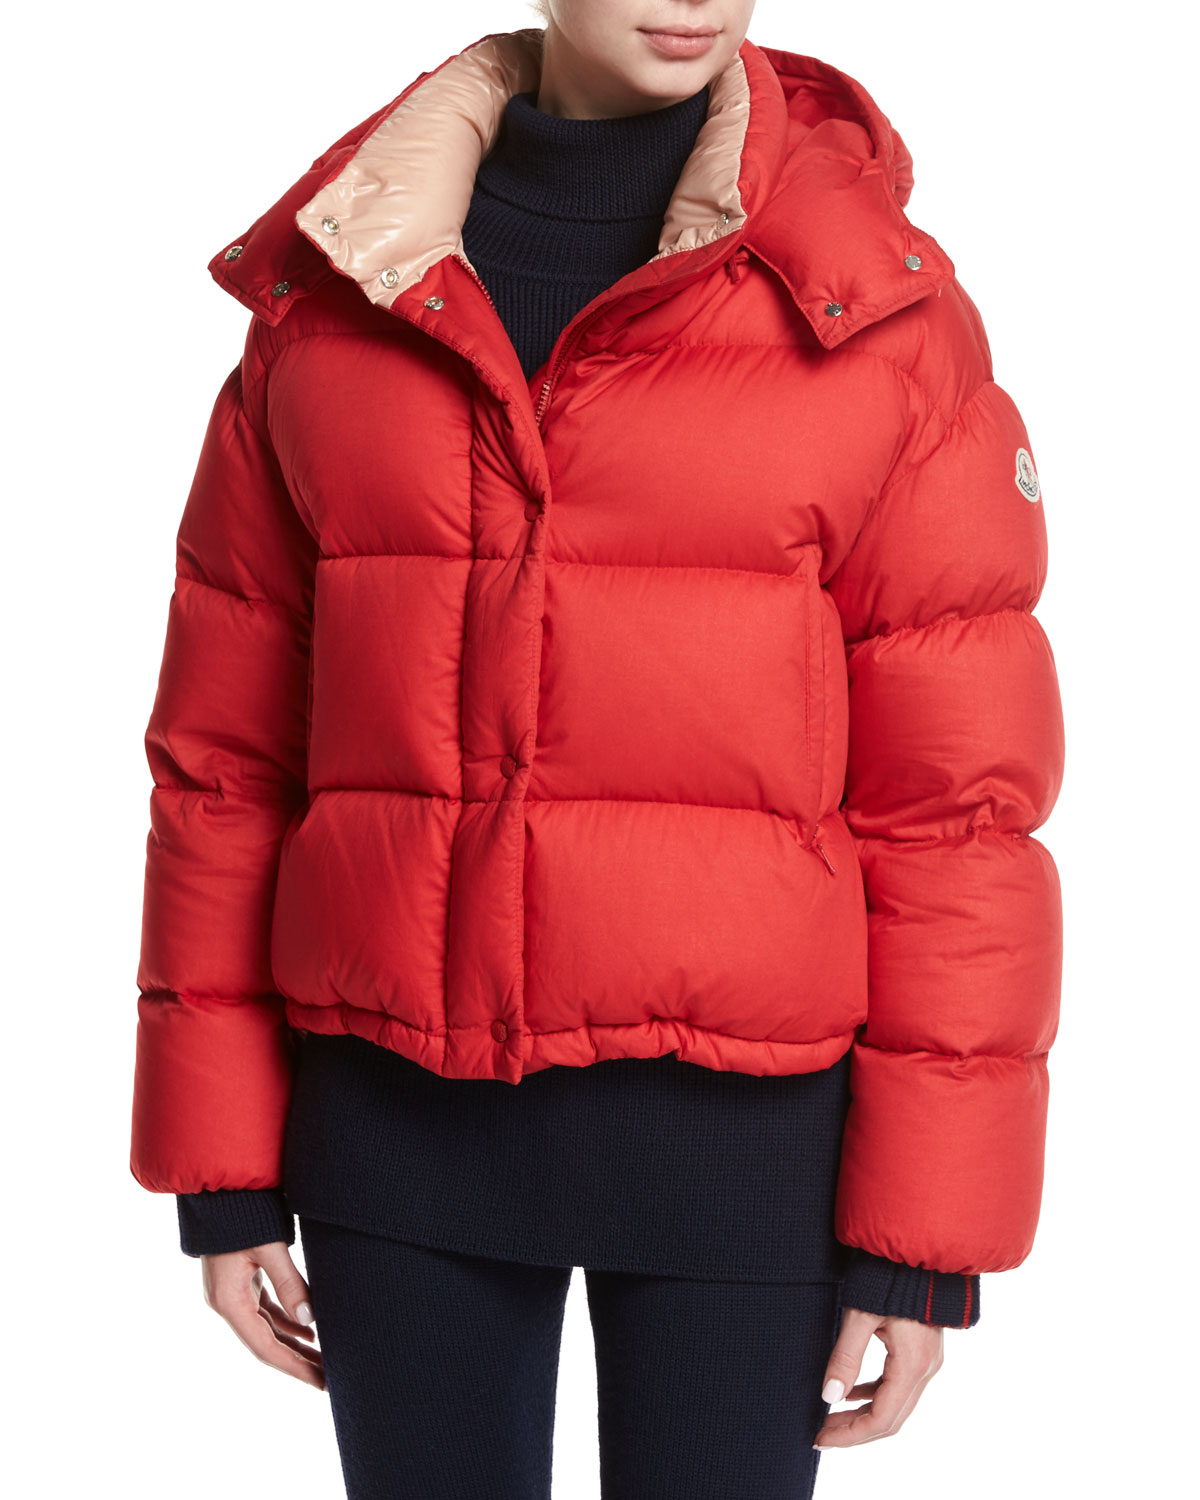 moncler paeonia quilted puffer jacket red neiman marcus rh neimanmarcus com